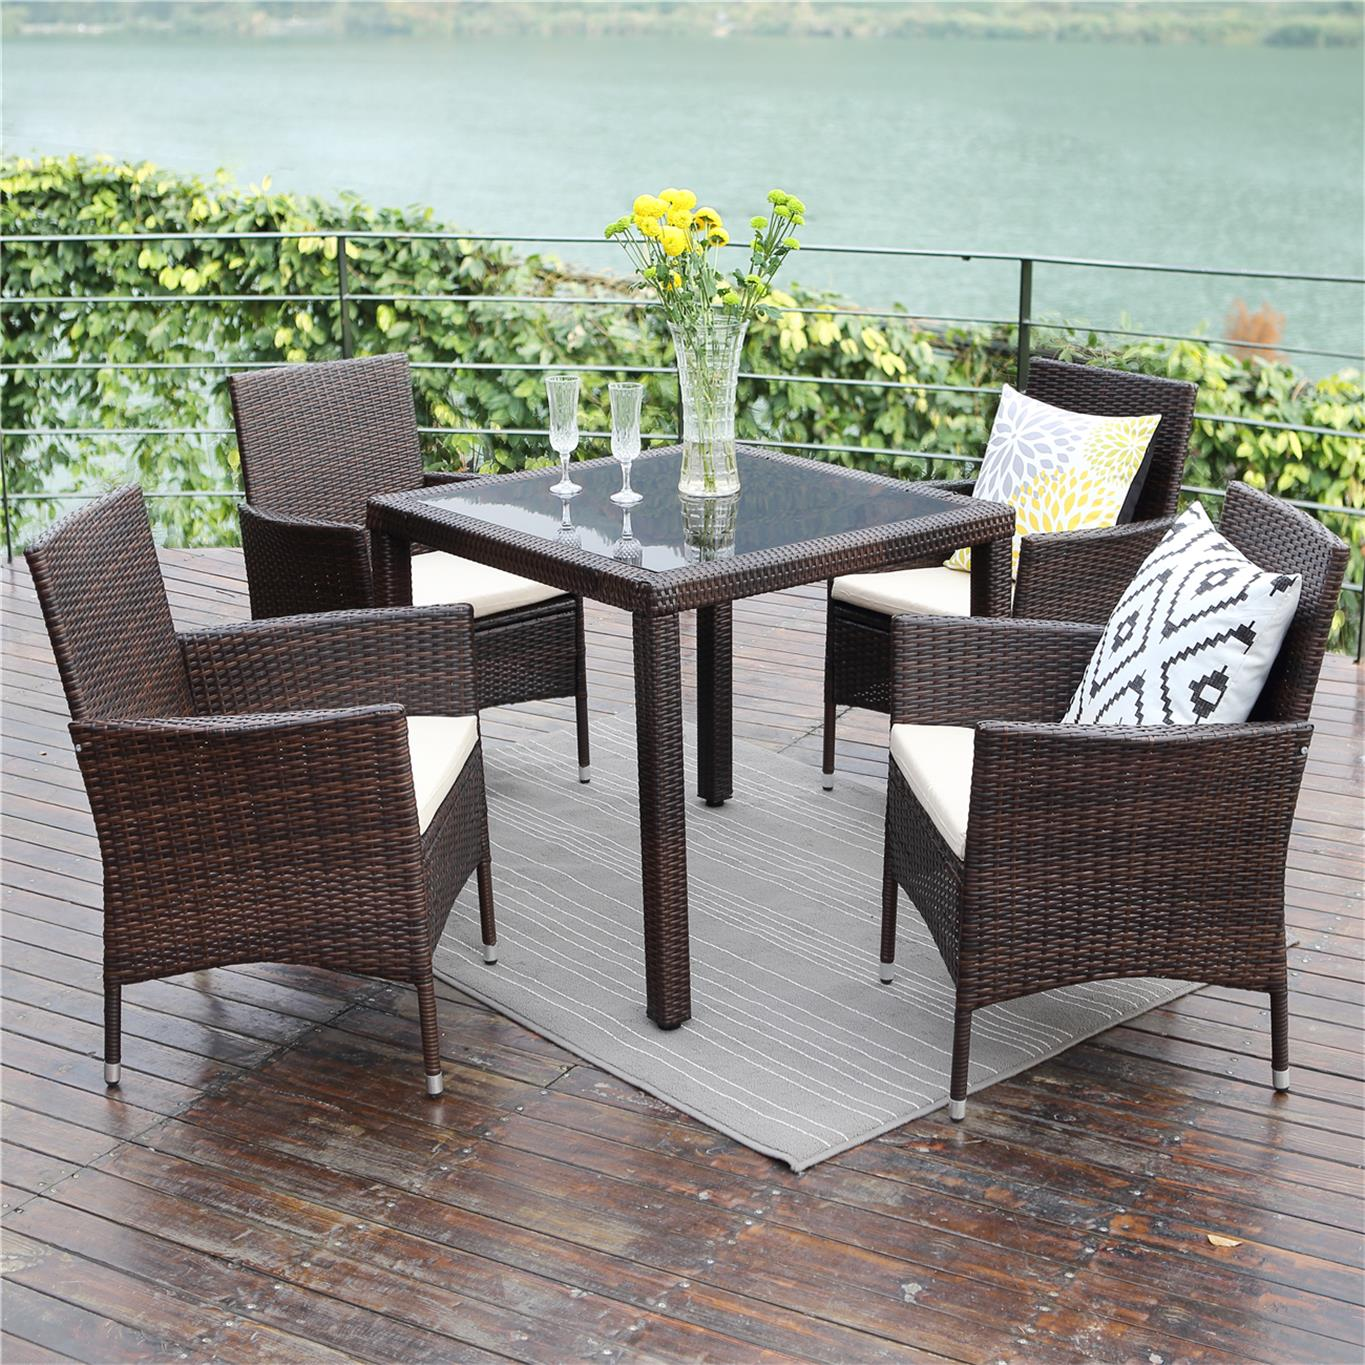 Patio Dining Table Set 5 Piece,Wisteria Lane Outdoor